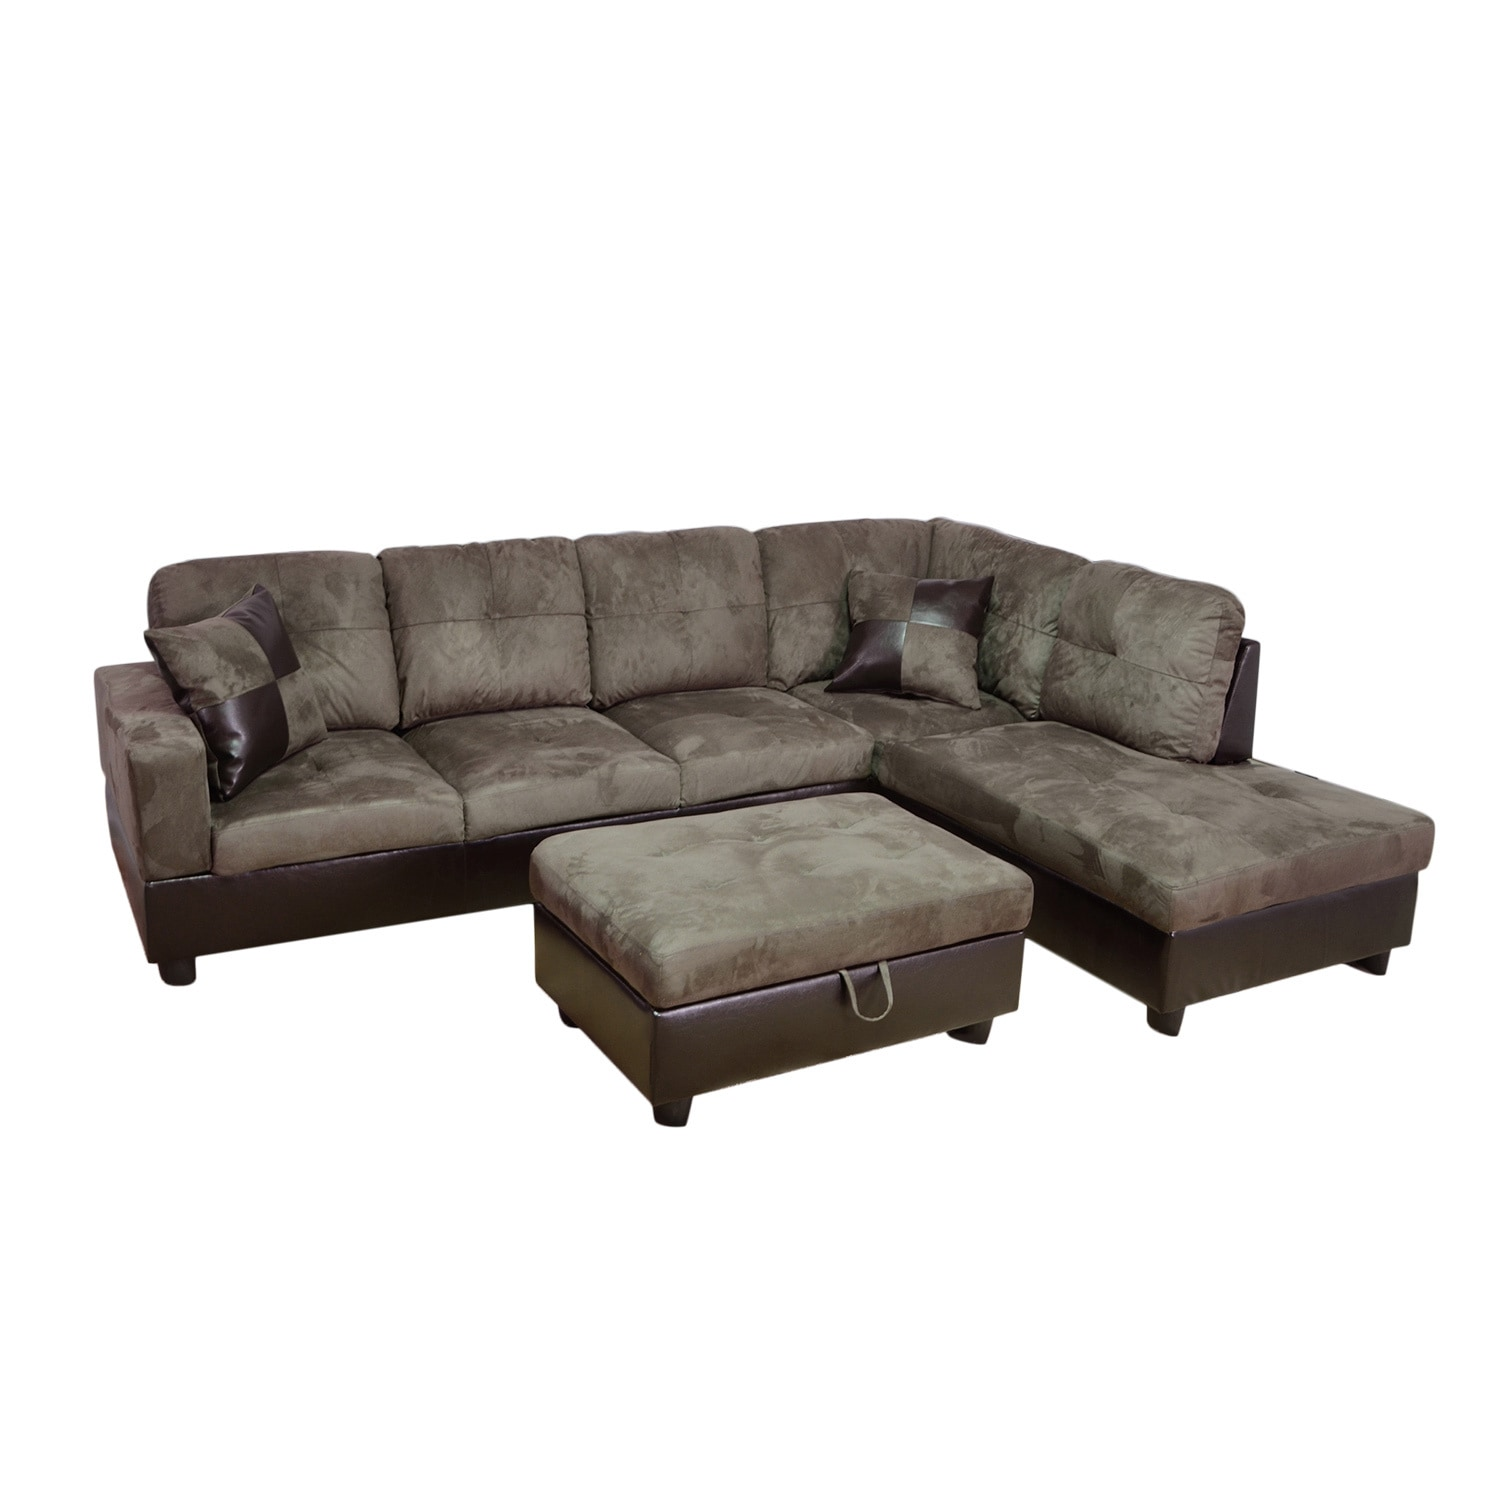 piece grey microsuede right chaise sectional set with storage ottoman